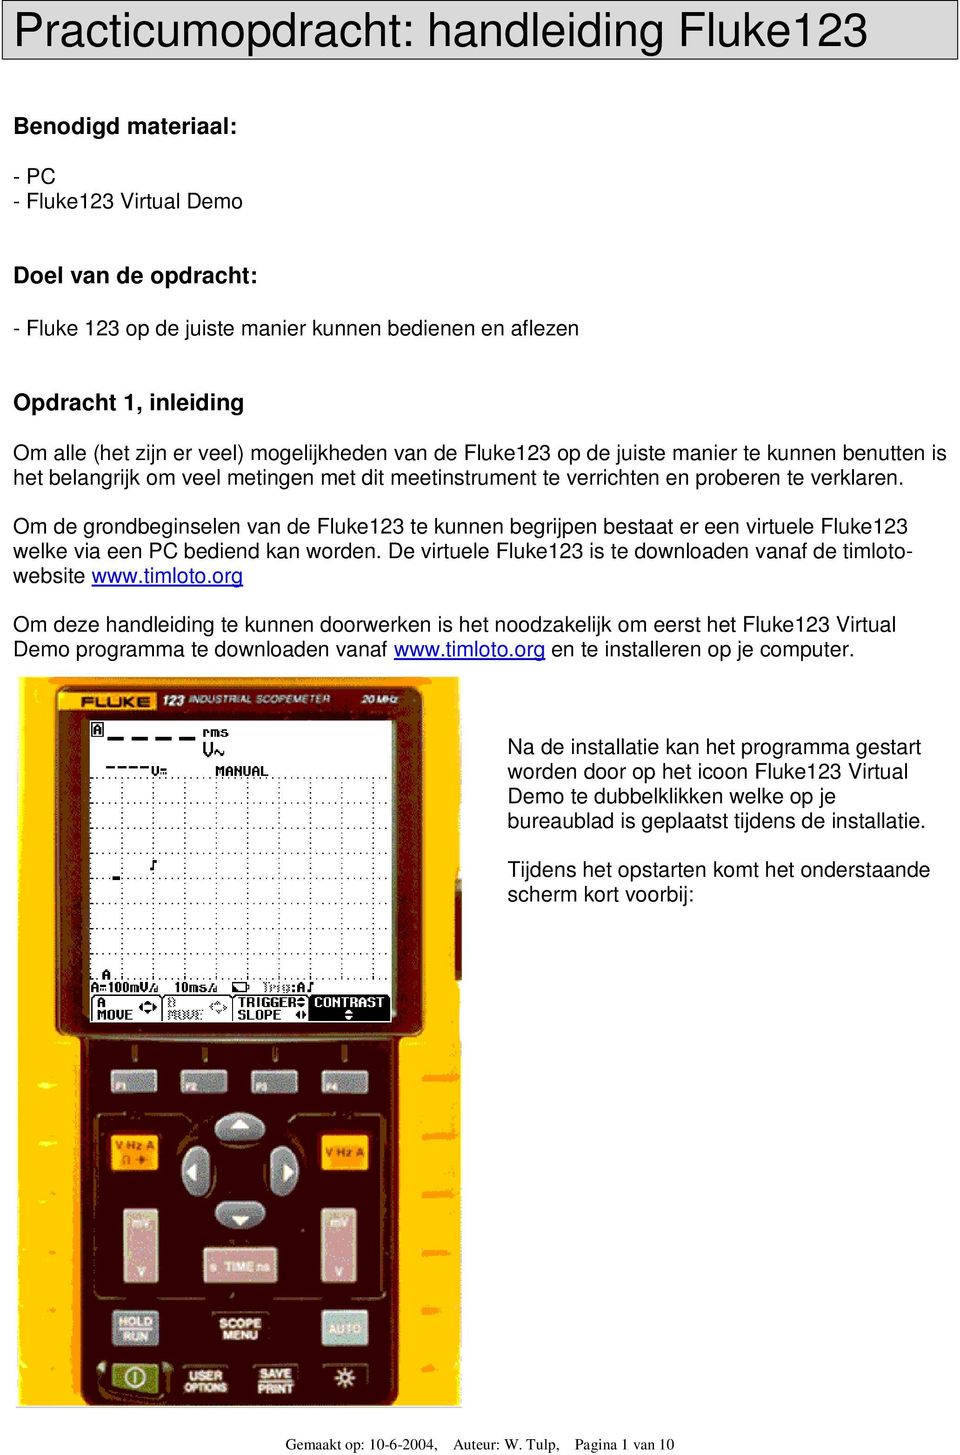 Om de grondbeginselen van de Fluke123 te kunnen begrijpen bestaat er een virtuele Fluke123 welke via een PC bediend kan worden. De virtuele Fluke123 is te downloaden vanaf de timlotowebsite www.